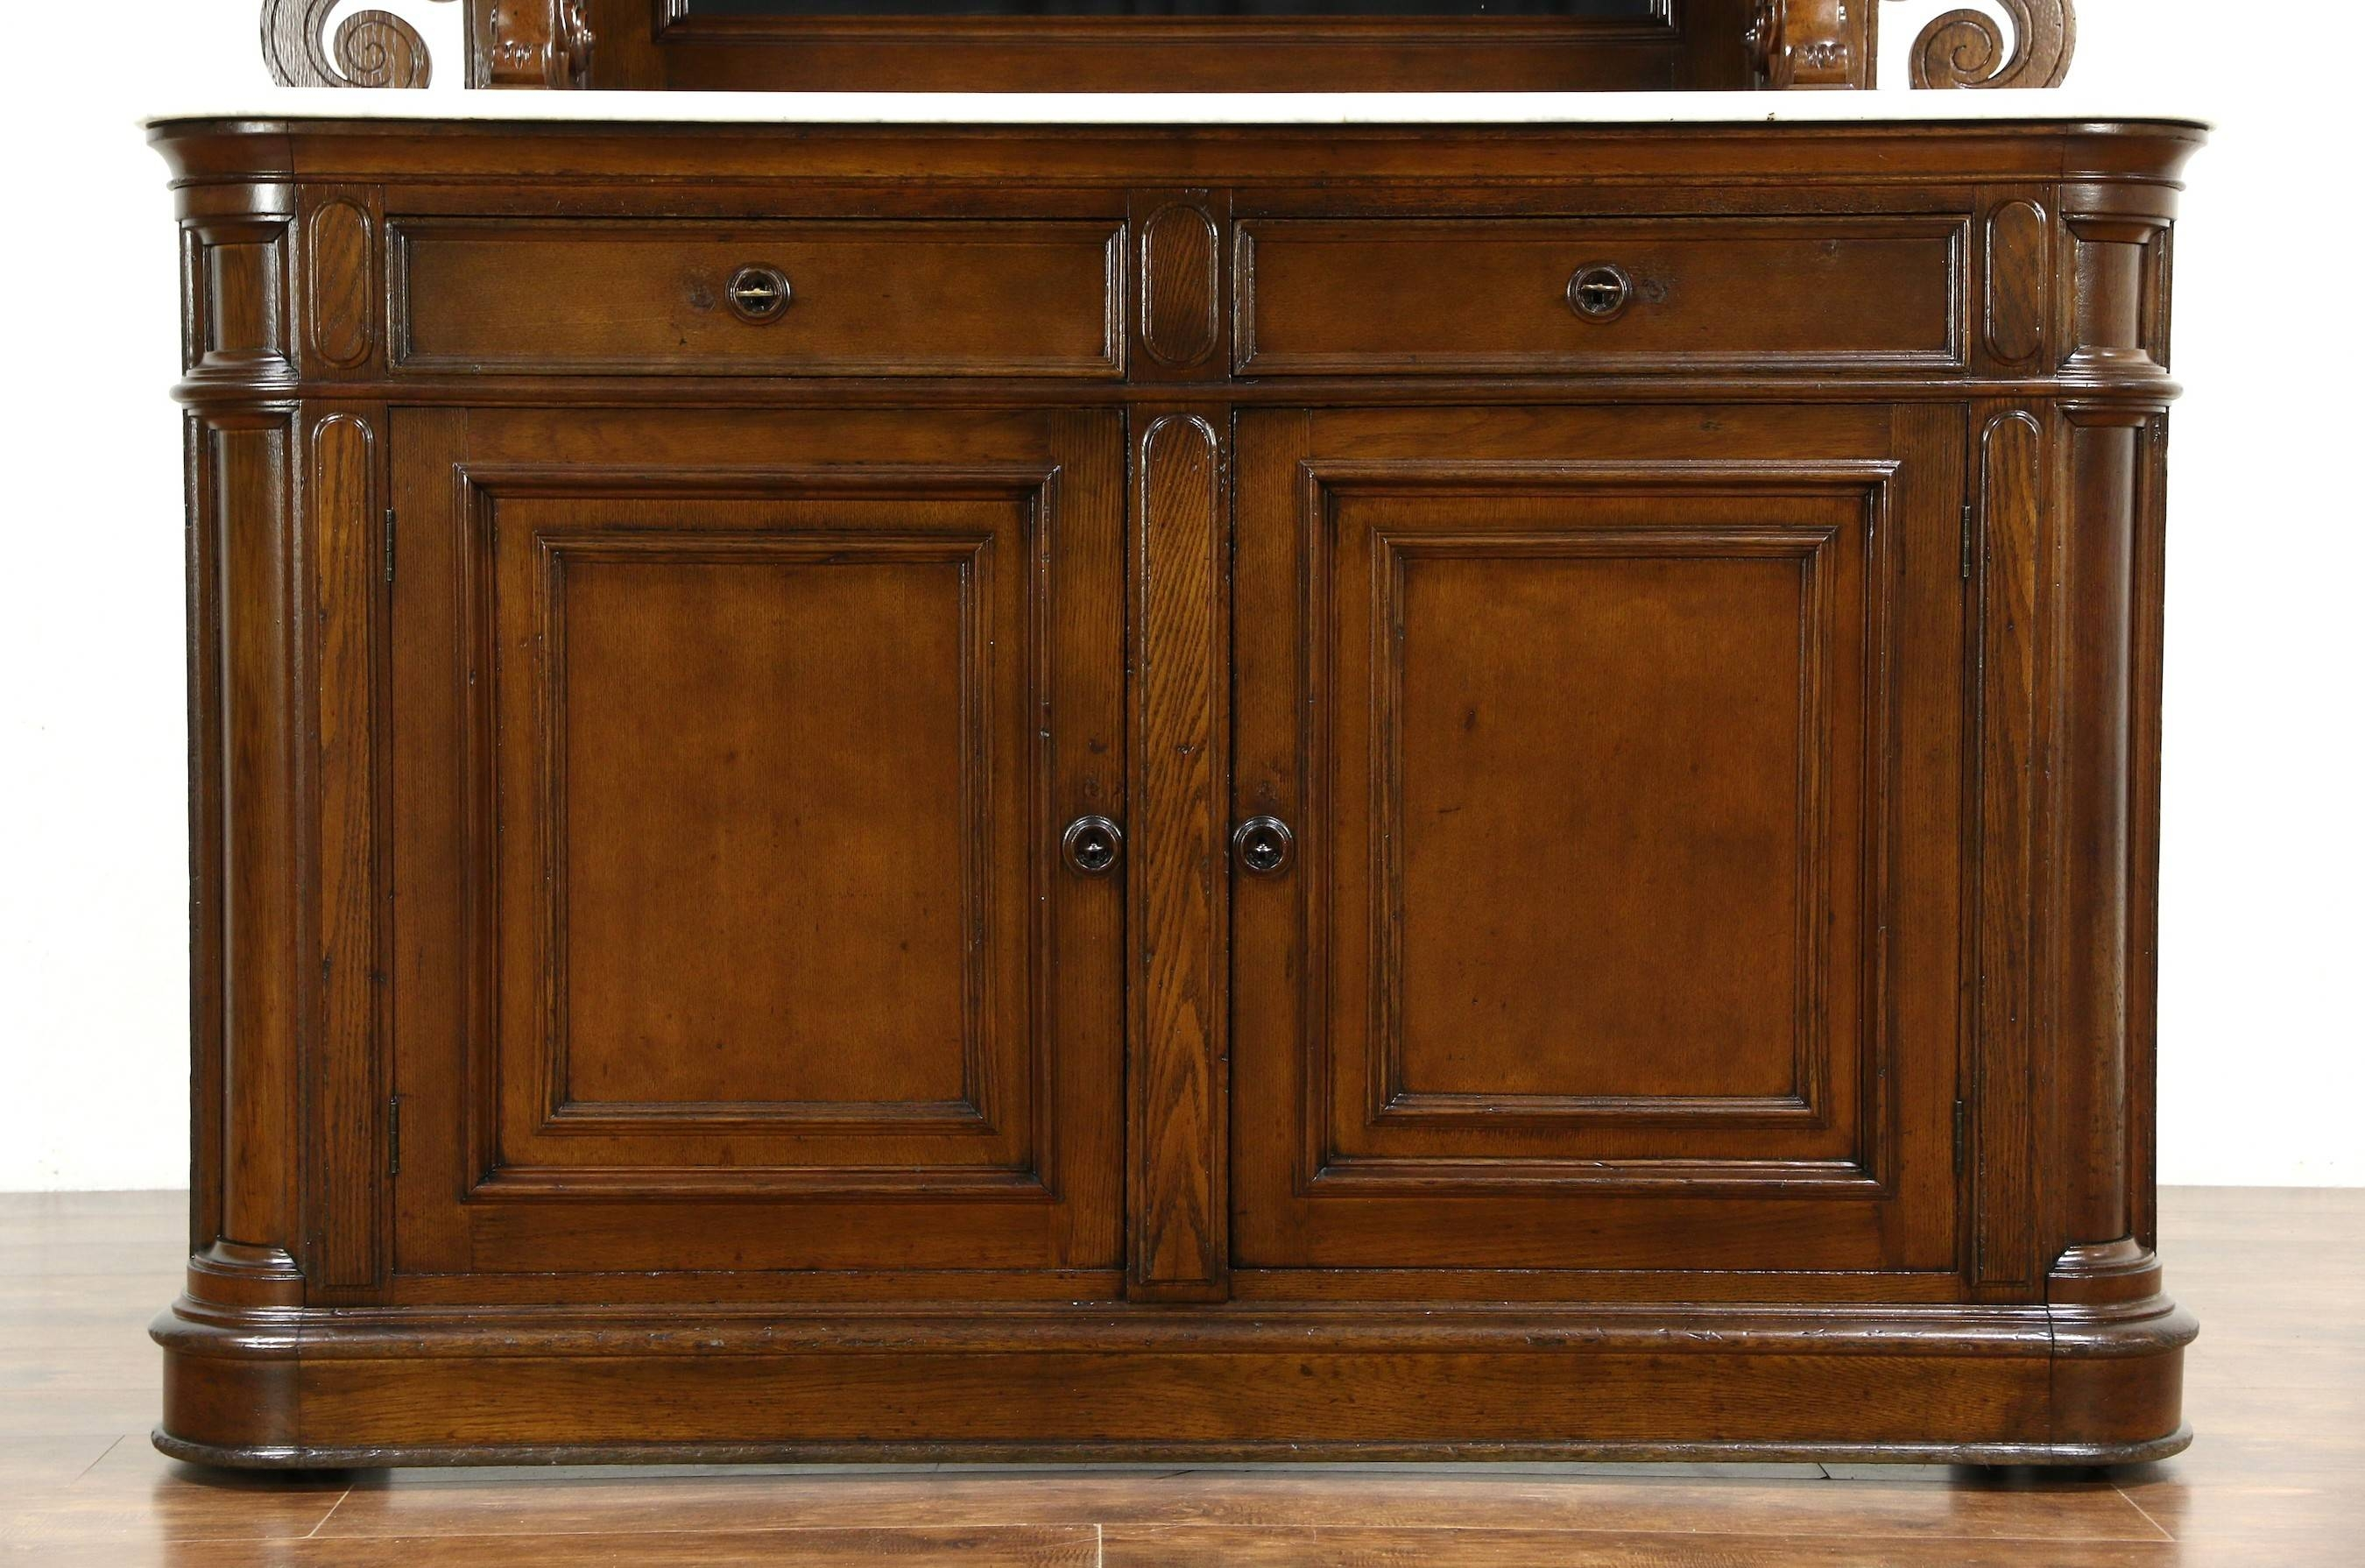 Victorian Grape Carved Oak Antique 1870 Sideboard, Server Or in Sideboards With Marble Tops (Image 15 of 15)